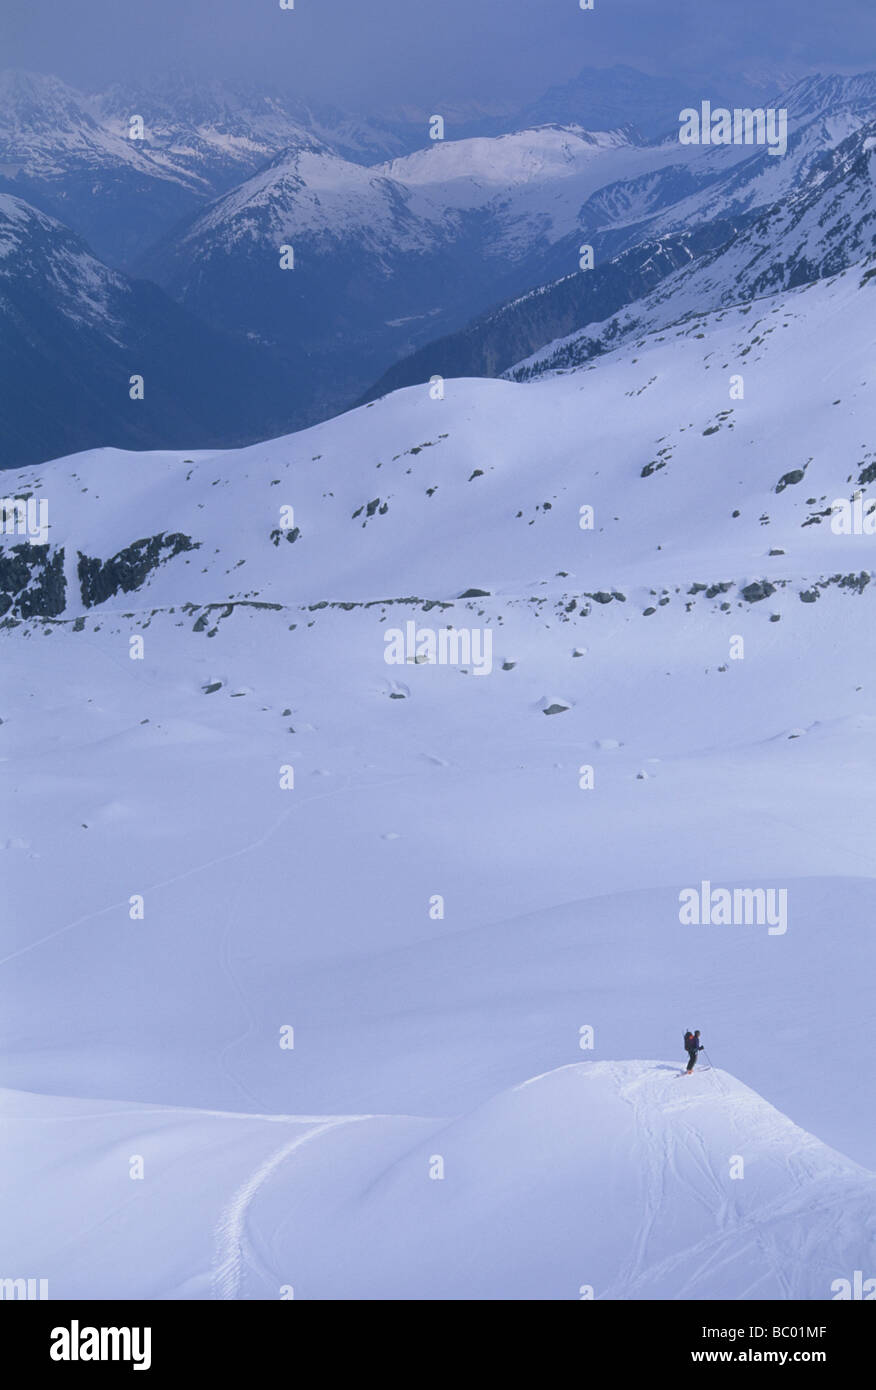 Skiing down Mt. Blanc after successful summit of Western Europe's tallest peak. - Stock Image